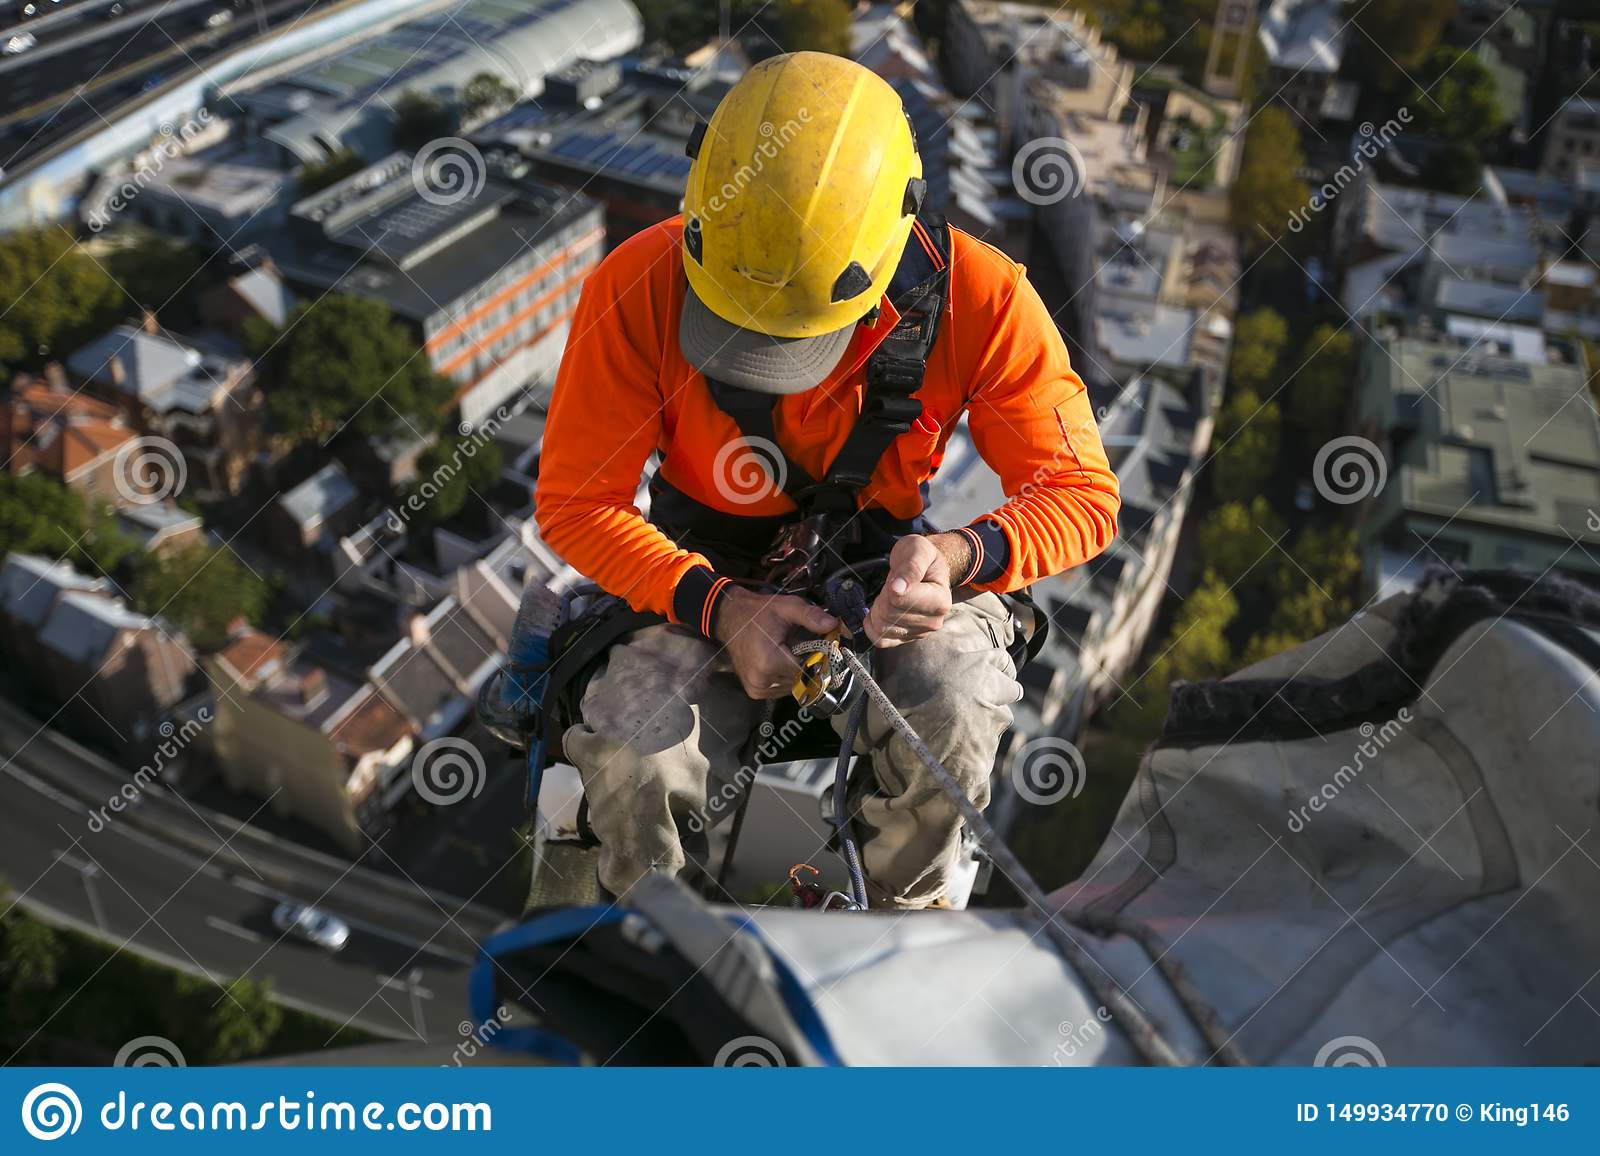 Close up pic of male rope access jobs worker wearing yellow hard hat, long sleeve shirt, safety harness, working at height